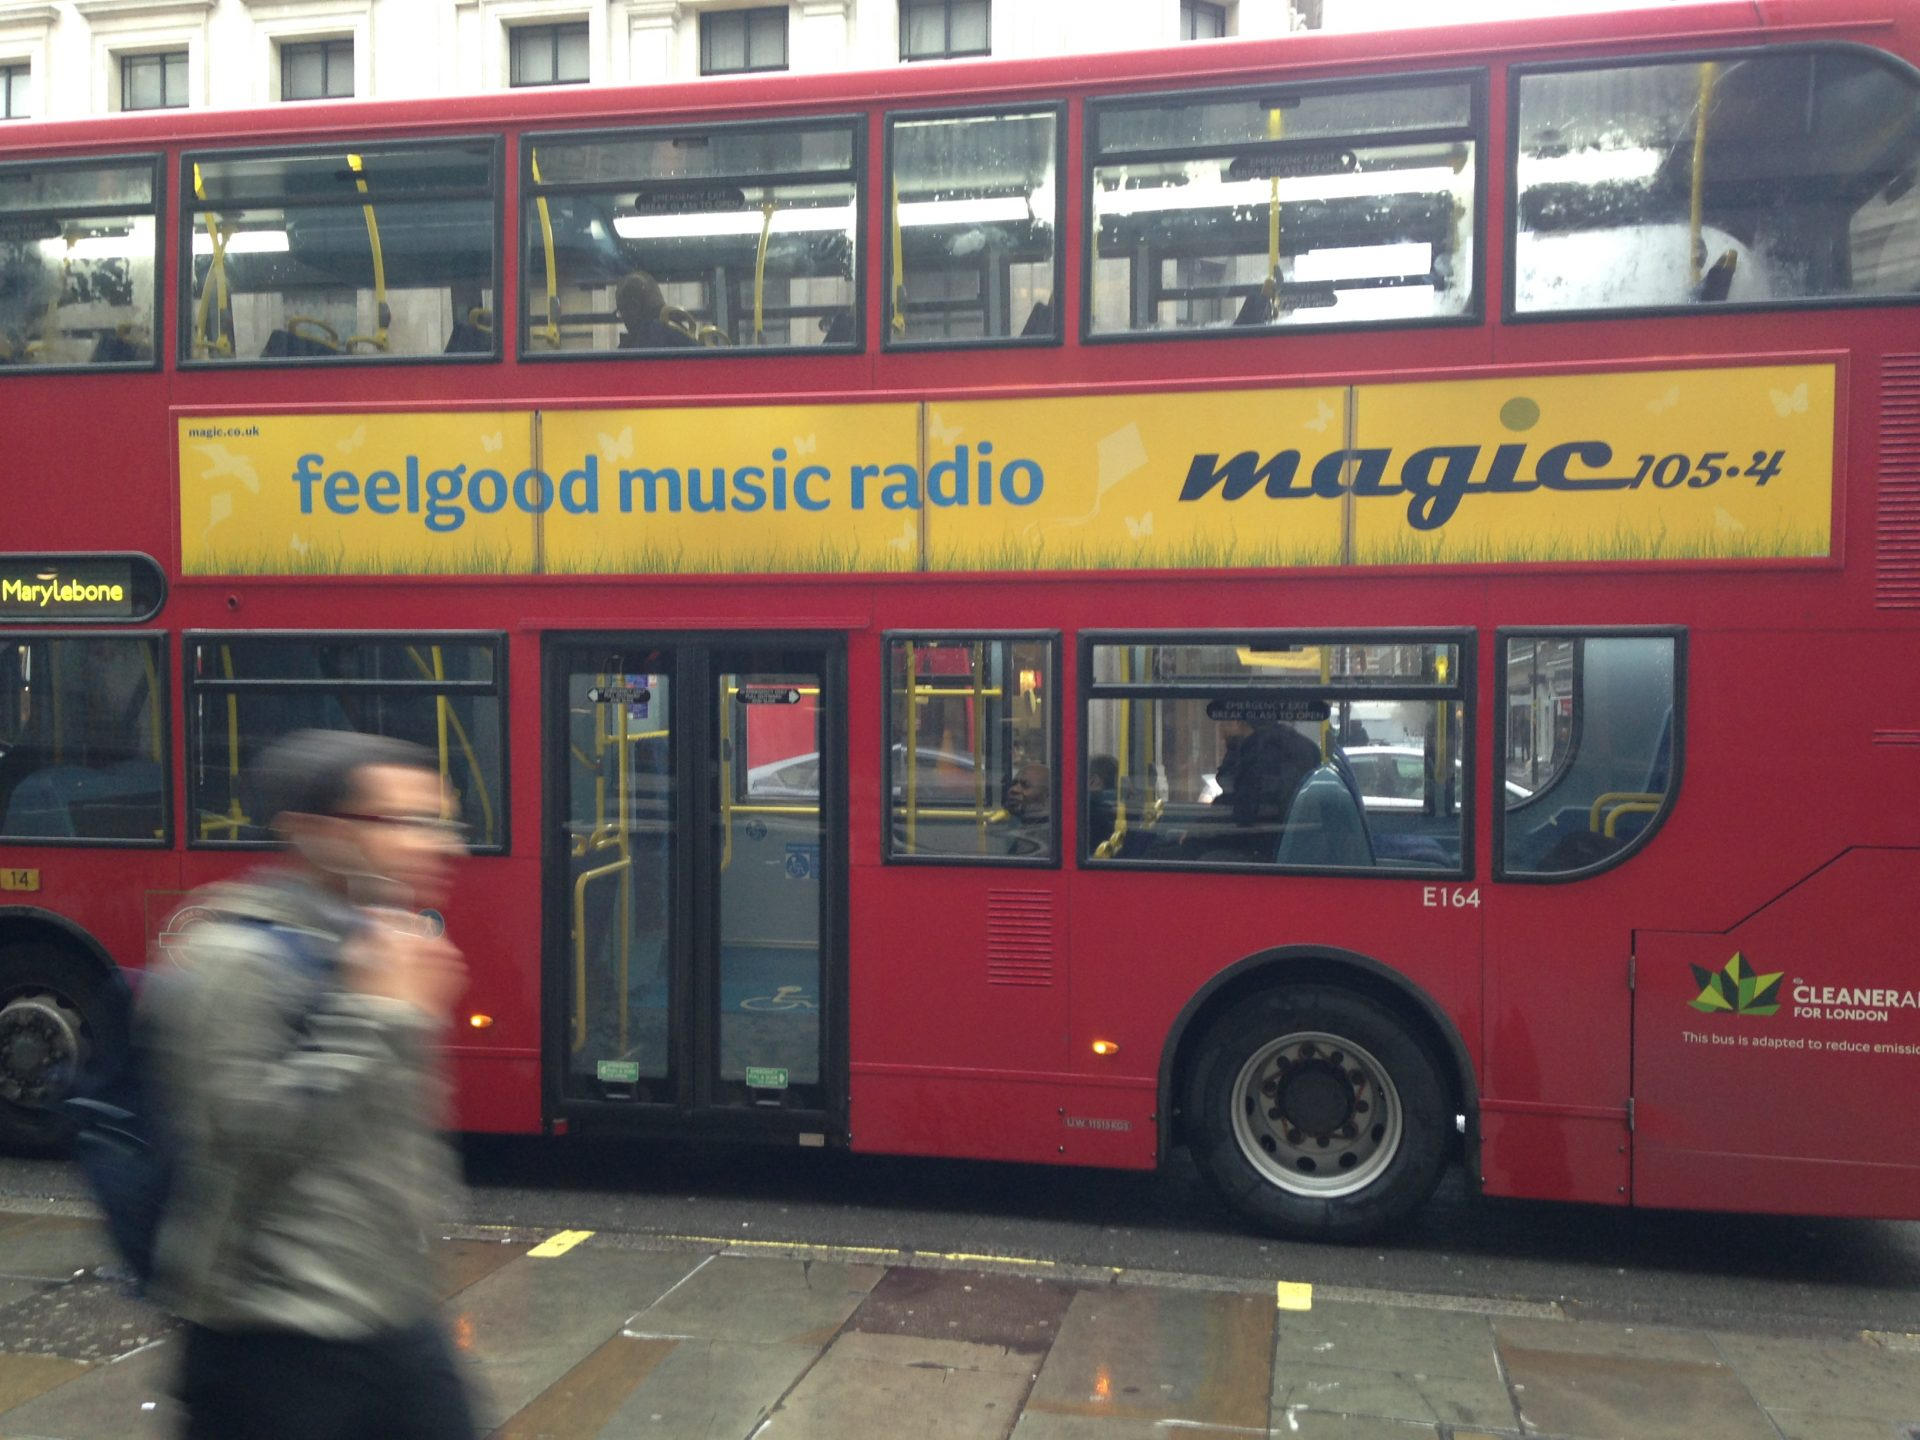 Magic bus side in london